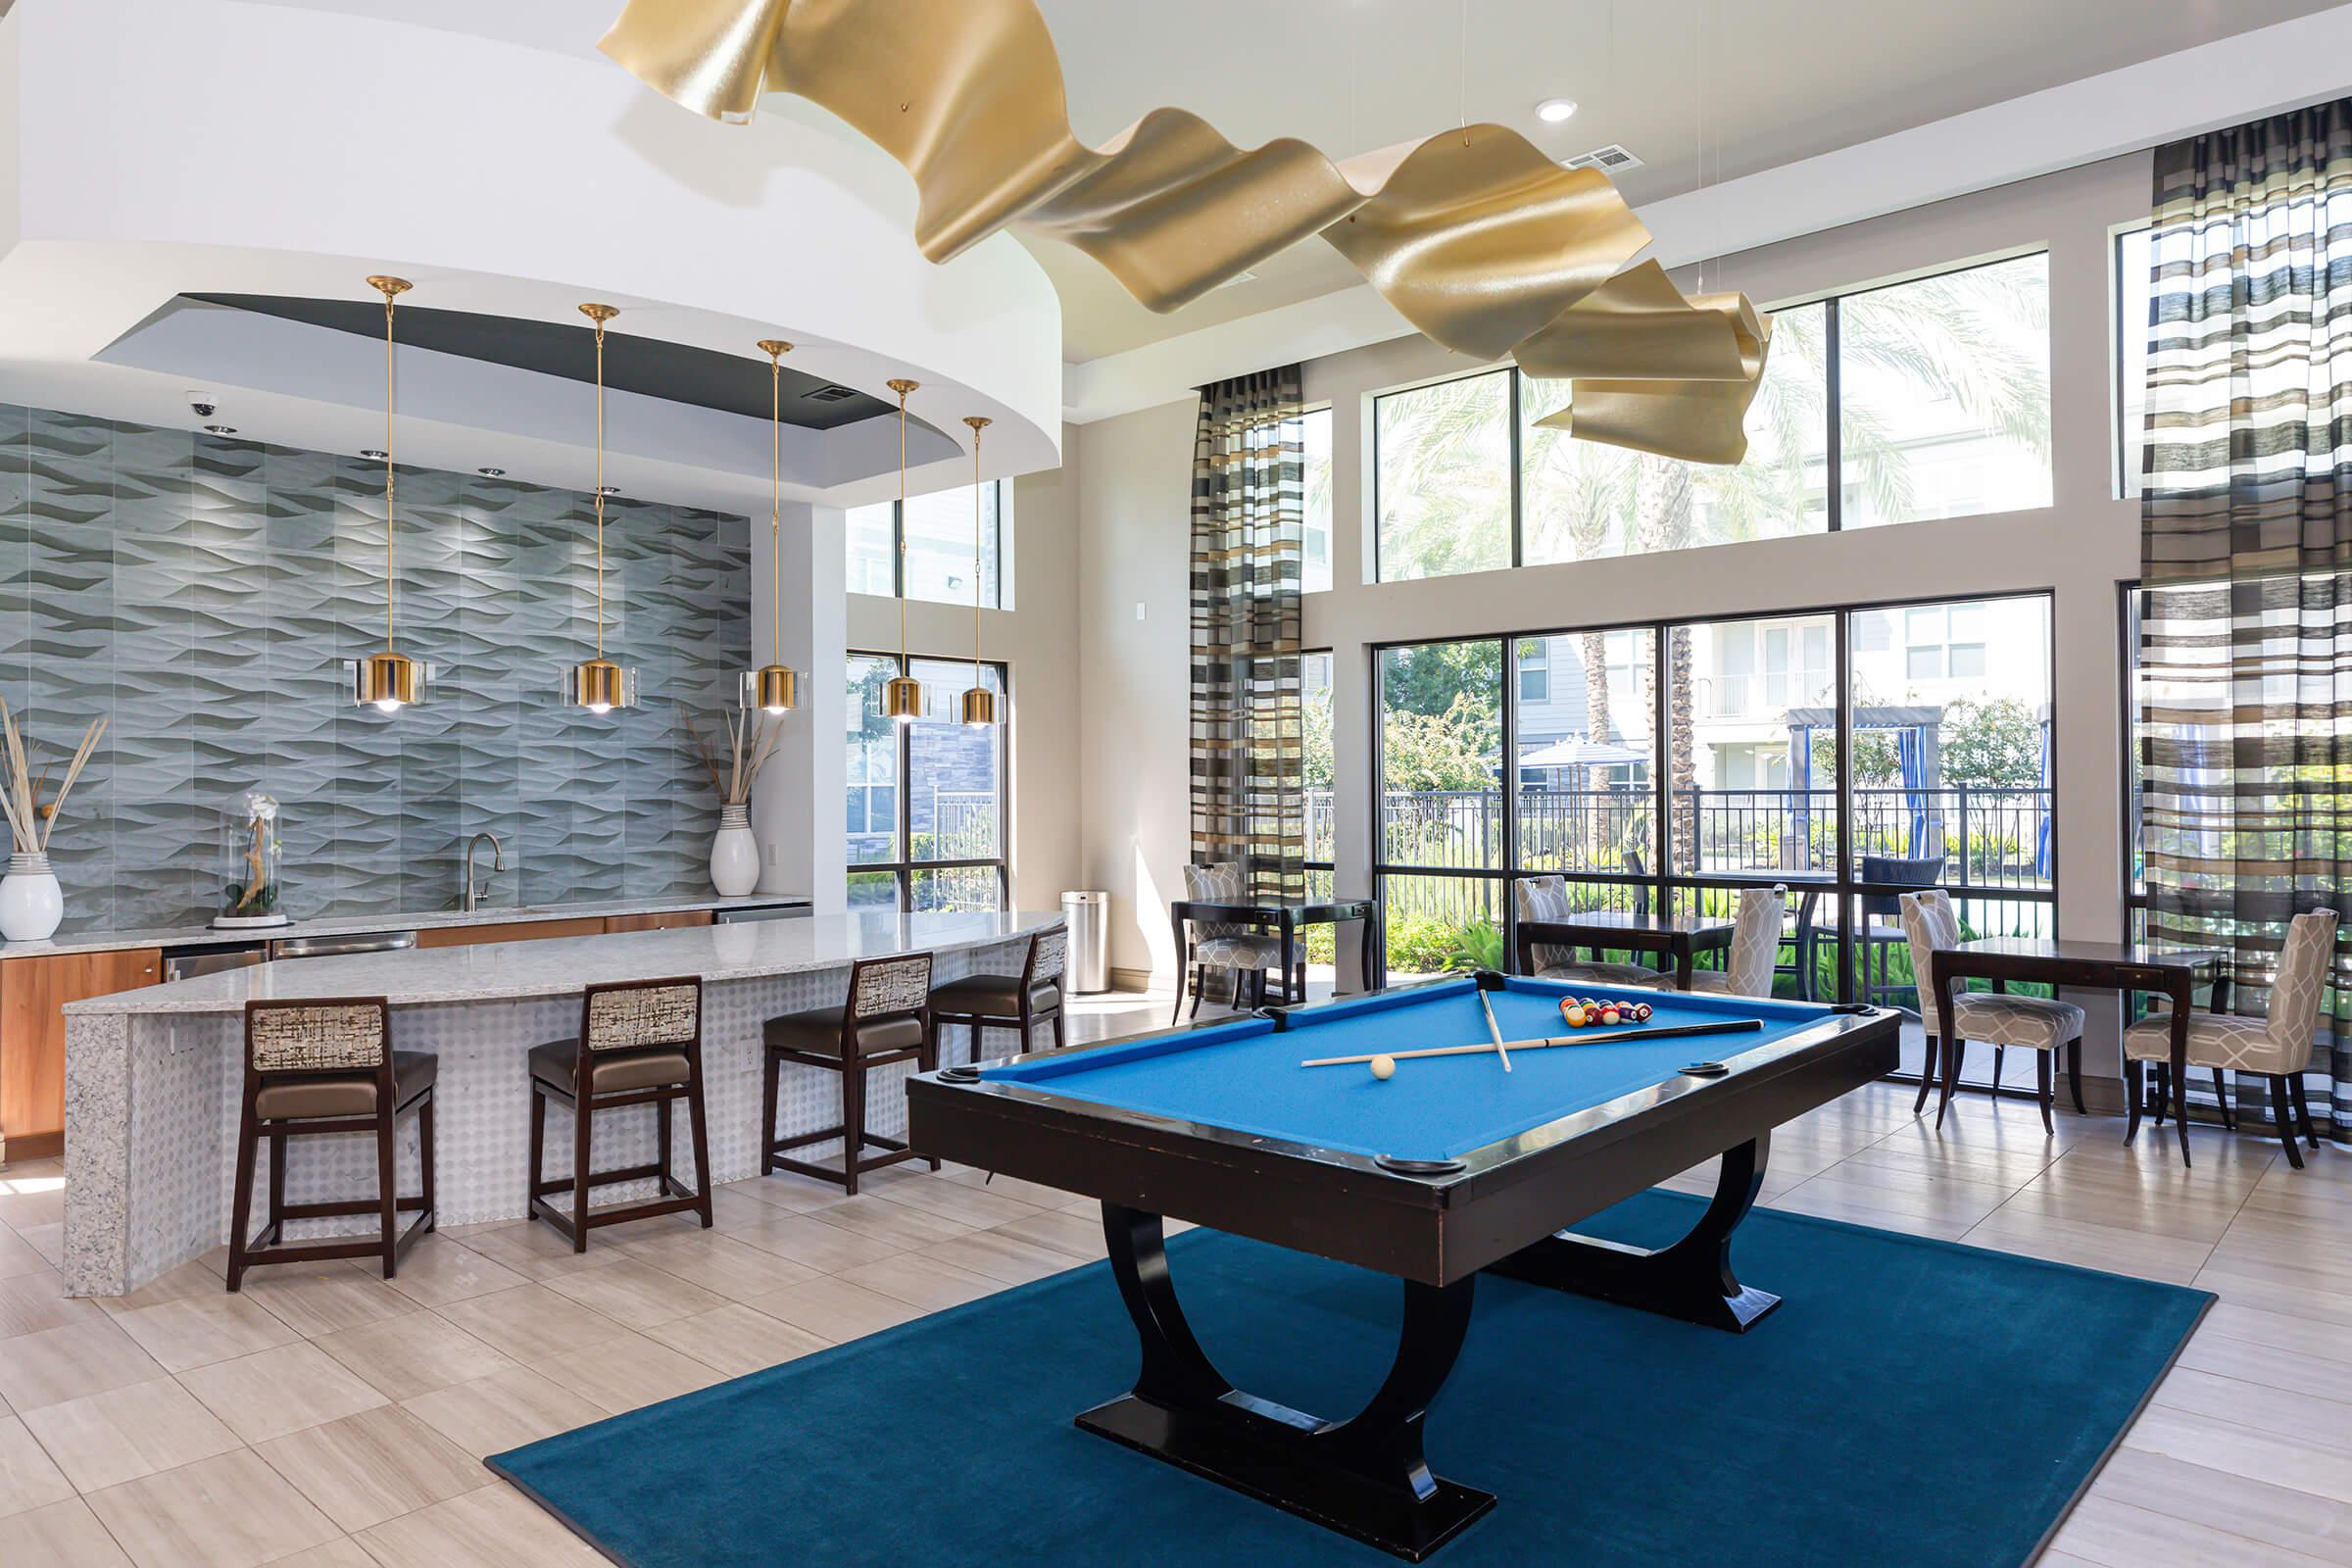 a room filled with furniture and a pool table